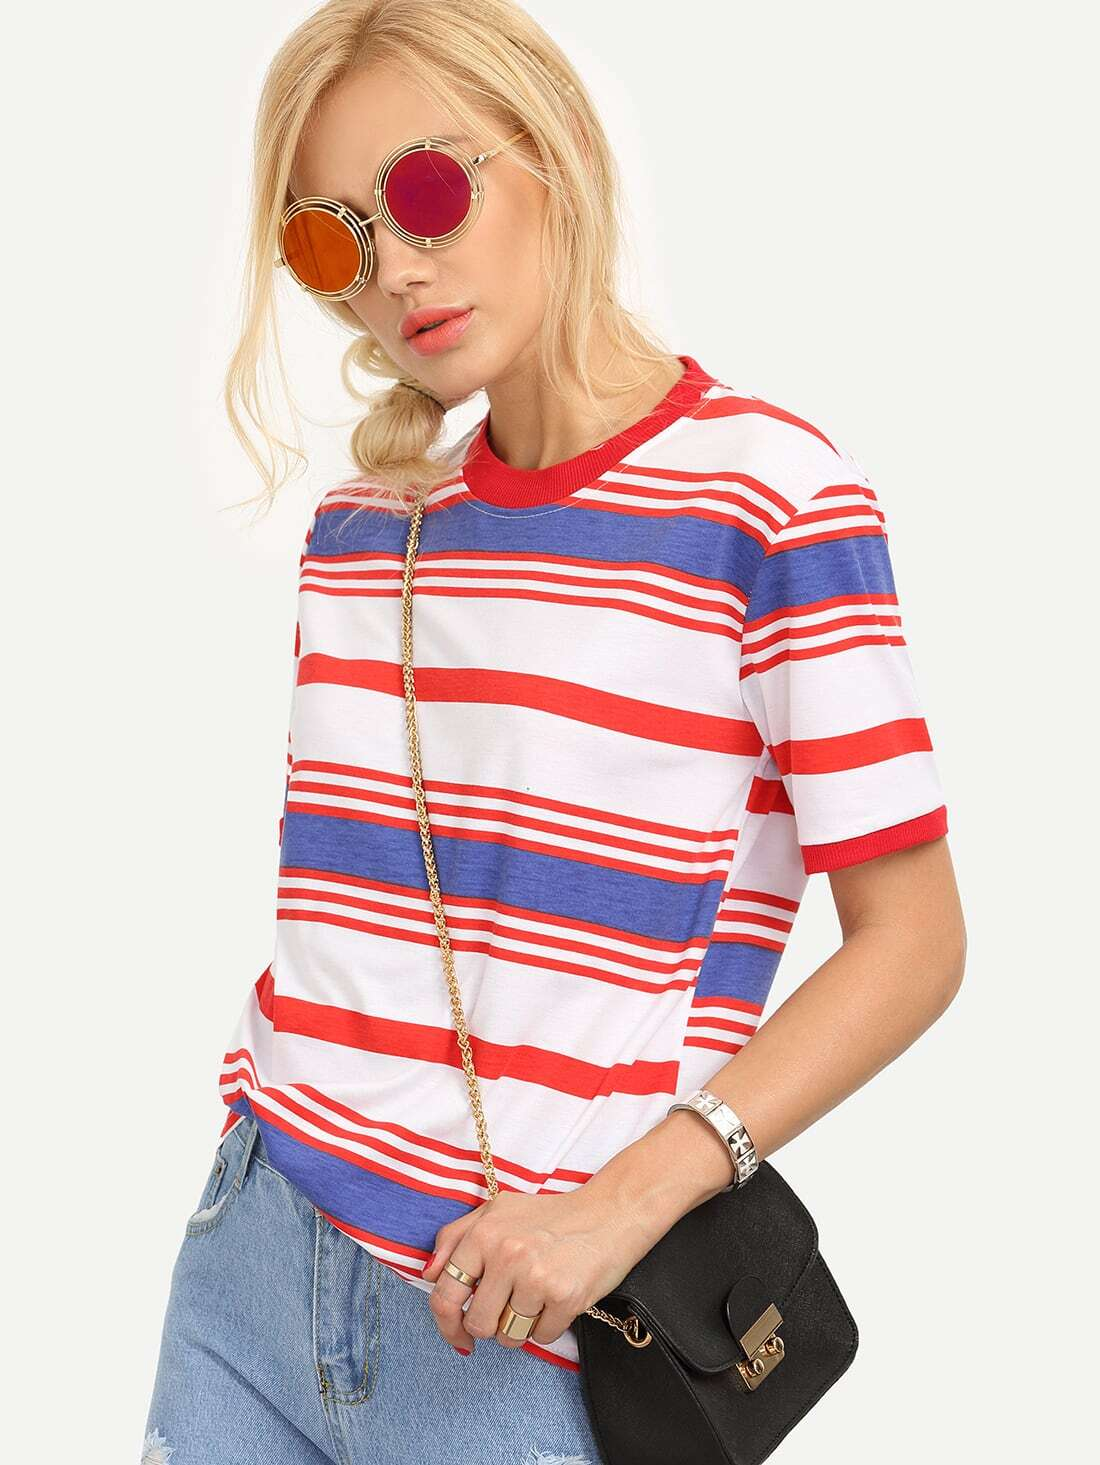 Ribbed Neck Colorful Striped T-shirt